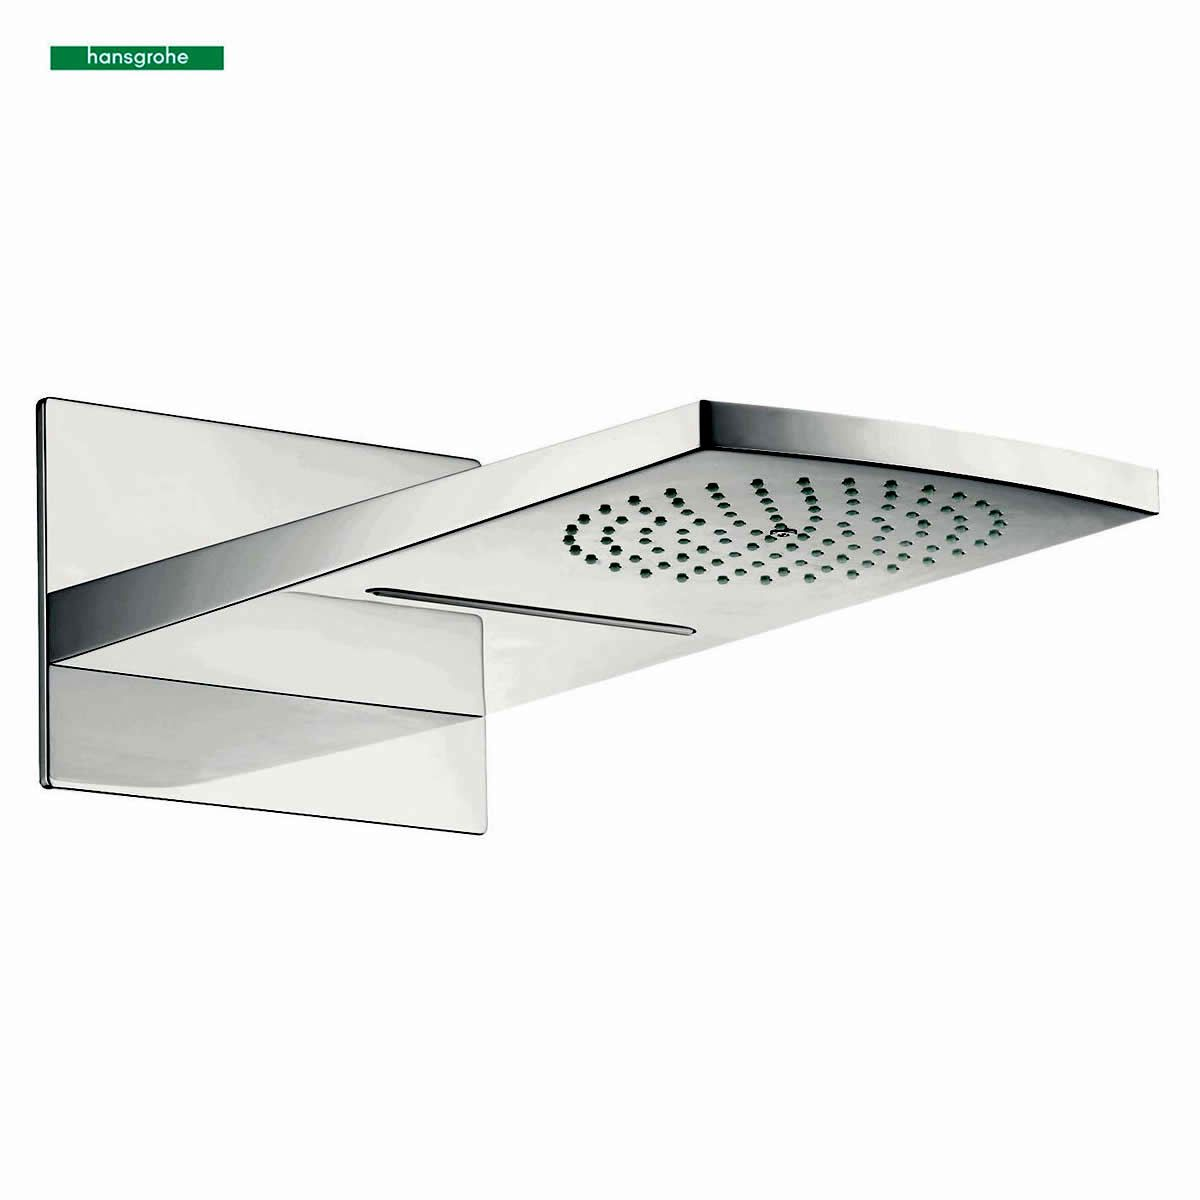 hansgrohe raindance rainfall 180 air 2jet overhead shower. Black Bedroom Furniture Sets. Home Design Ideas